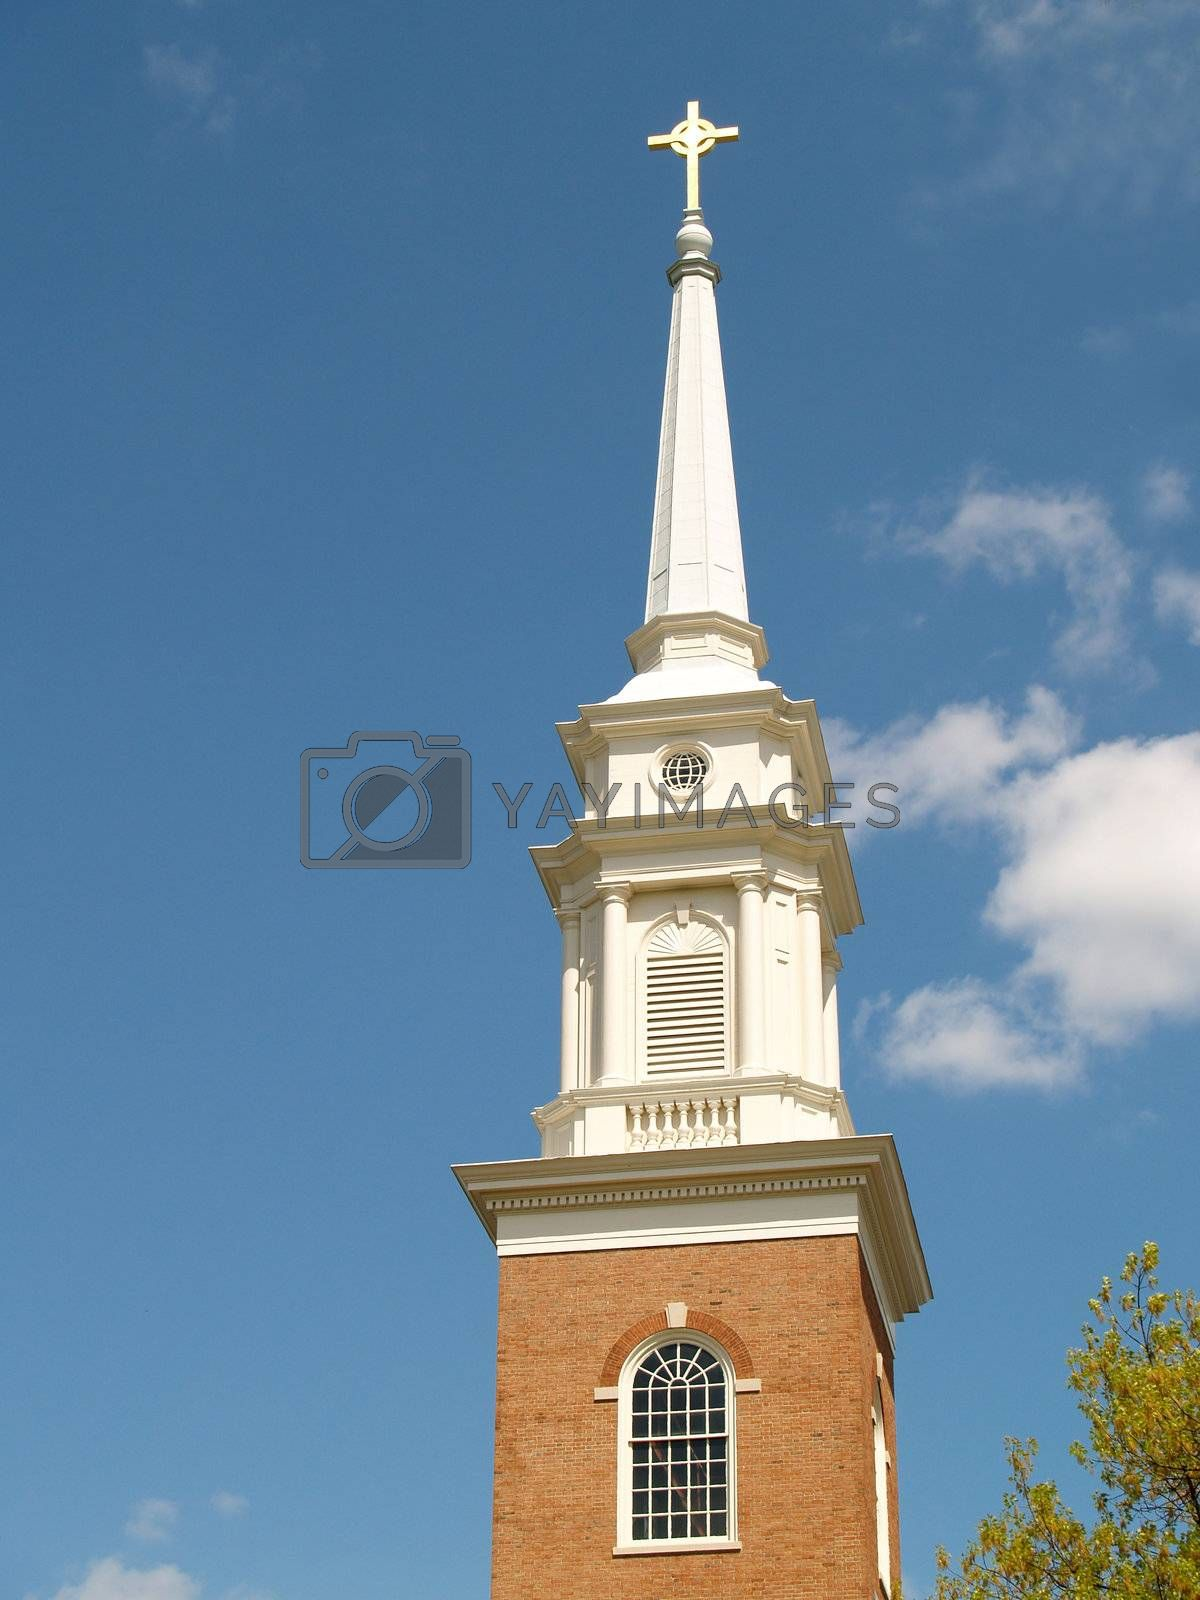 a white steeple on top of a red brick church